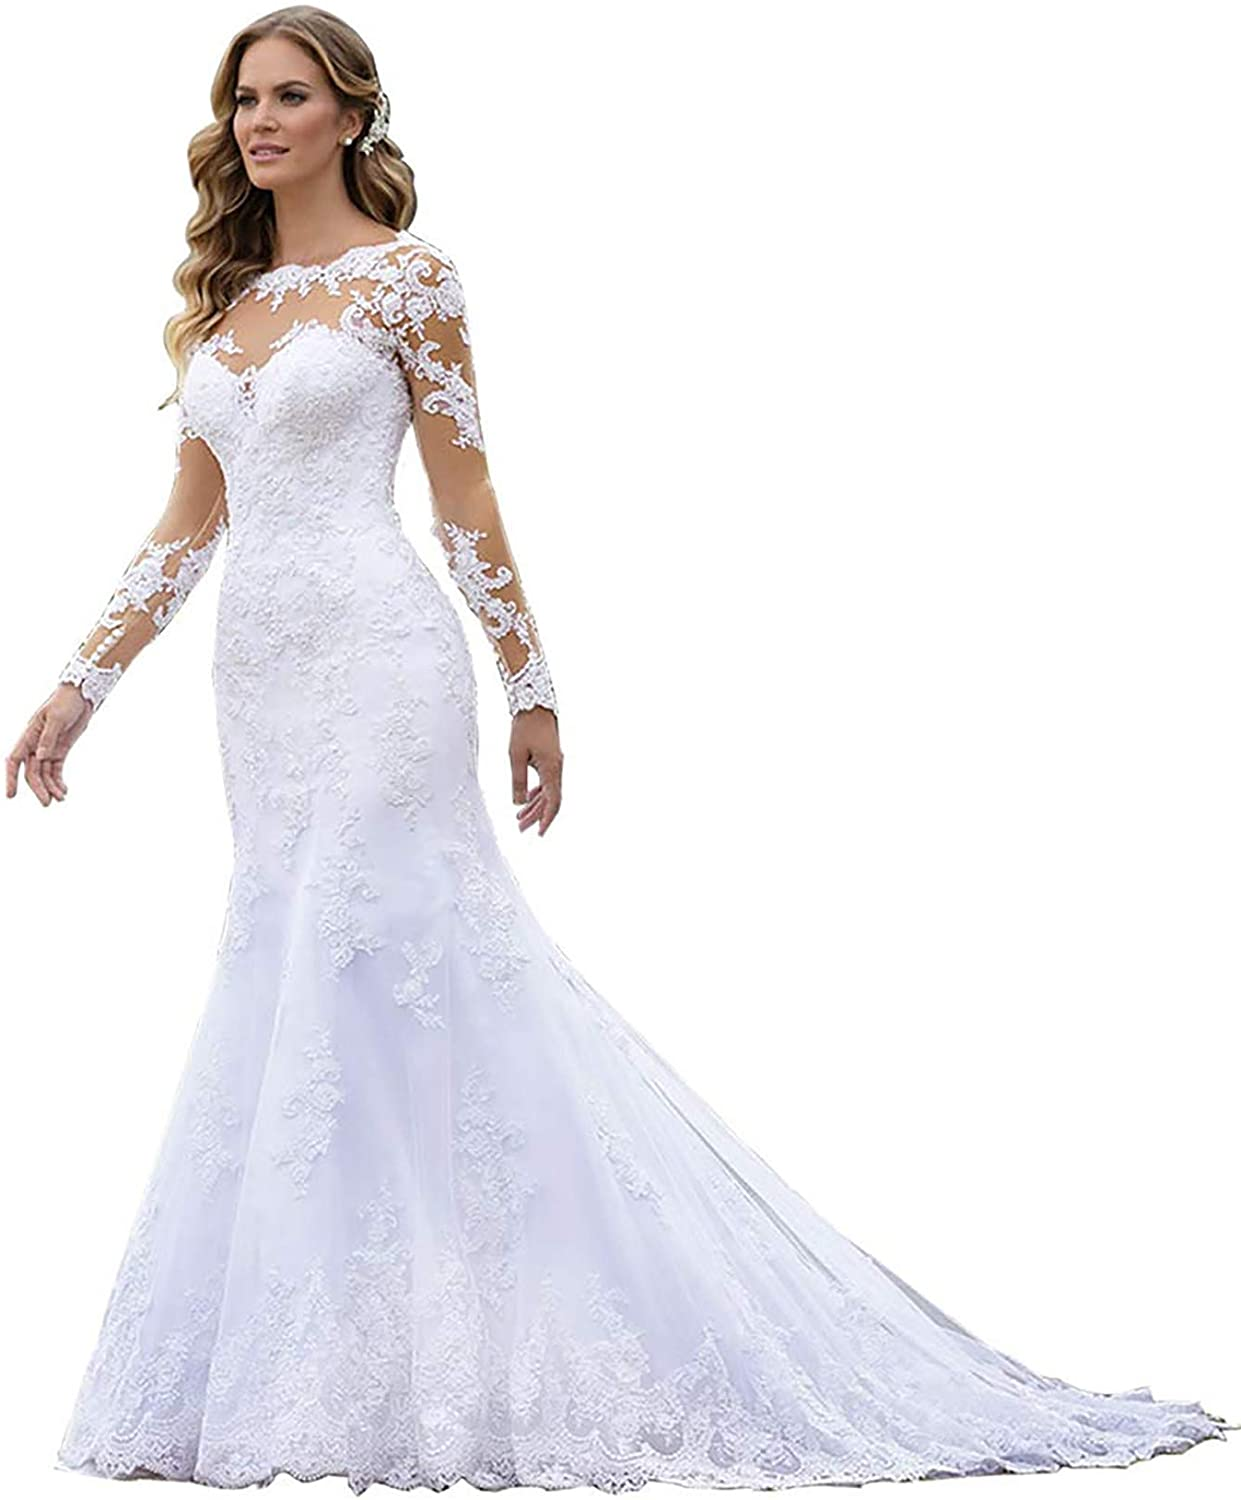 Plus Size Long Sleeve Mermaid Lace Appliques Chiffon Wedding Dresses Open Back Bridal Prom Gown White 20W